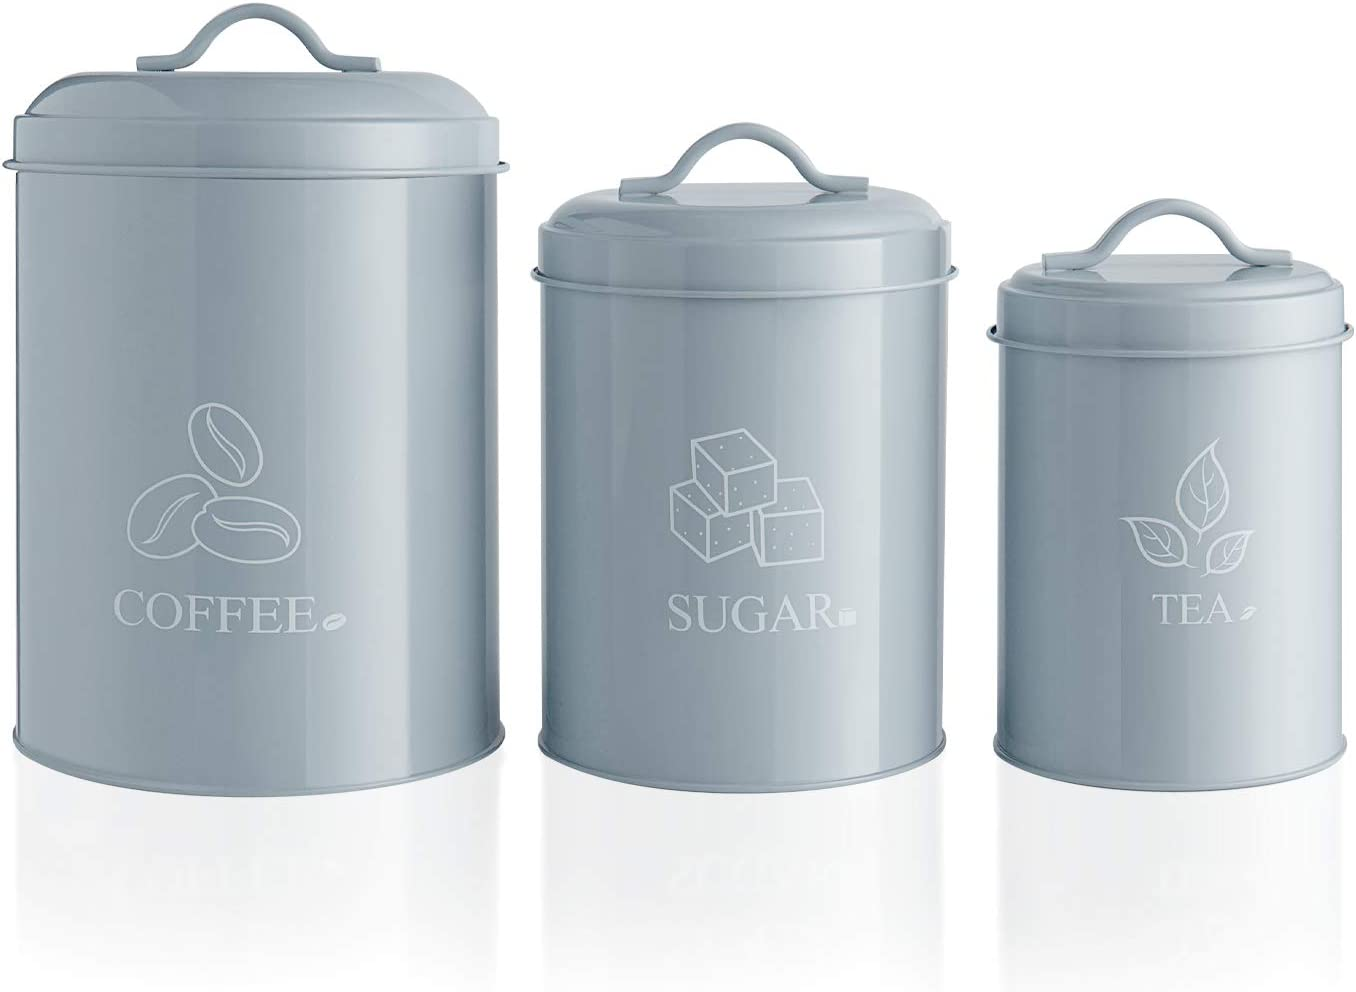 """G.a HOMEFAVOR Creative Decorative Nesting Kitchen Canisters Jars with Lids, Grey Metal Rustic Vintage Farmhouse Container Decor for Sugar Coffee Tea Storage, Set of 3, Largest is 6"""" x 9.4"""""""